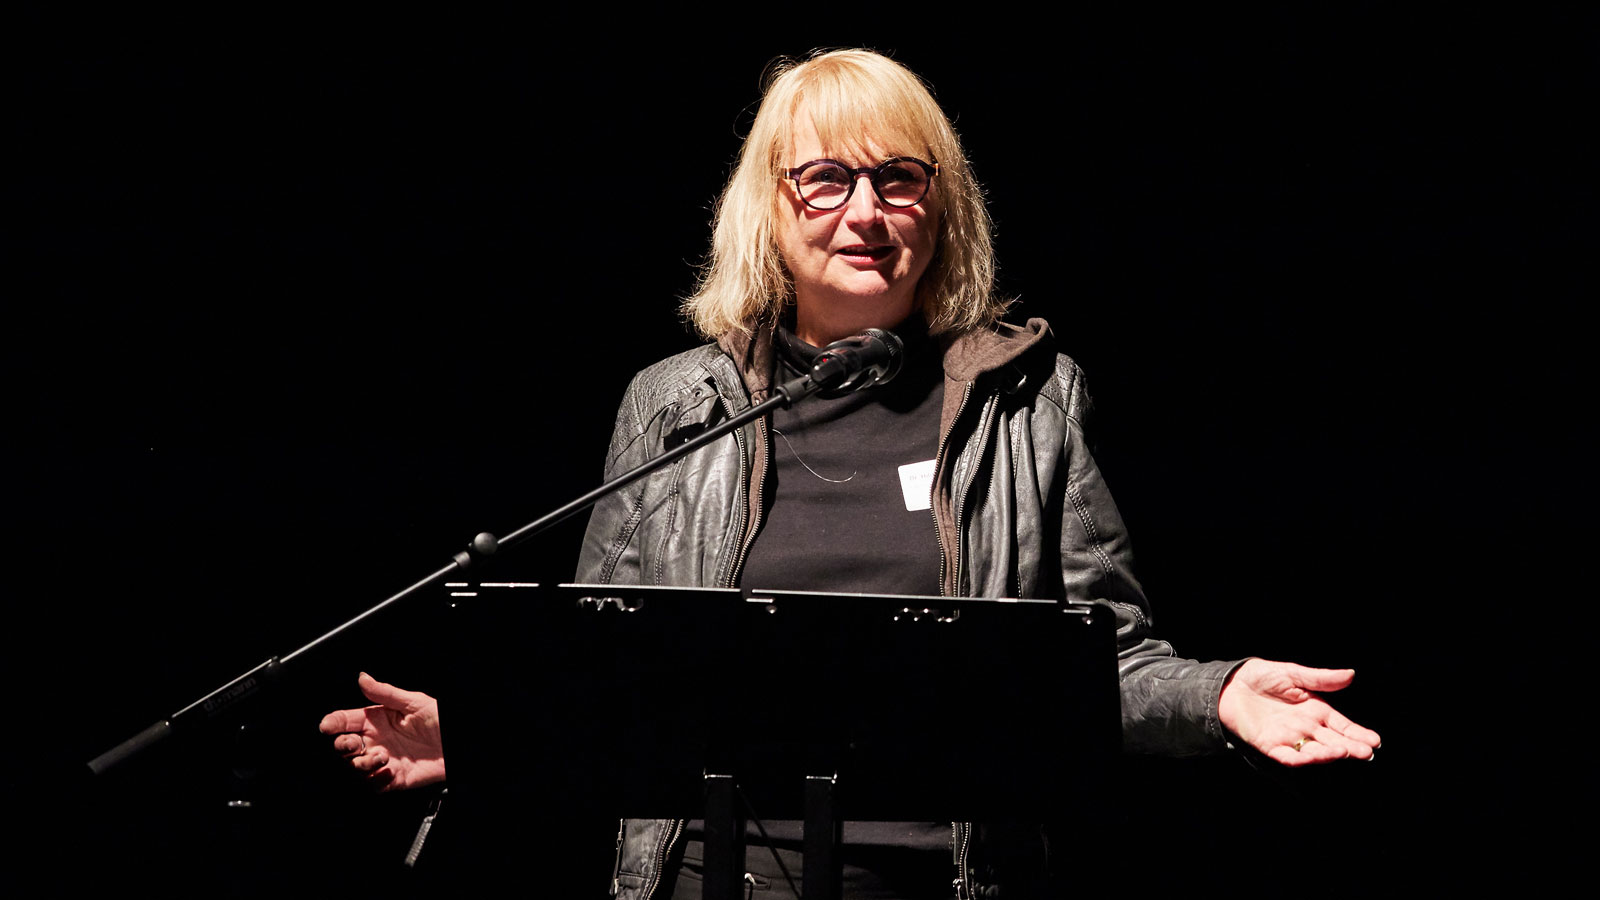 At the ALL IN Symposium. Dr. Hildegard Kaluza gives the opening speech. ©Anna Spindelndreier